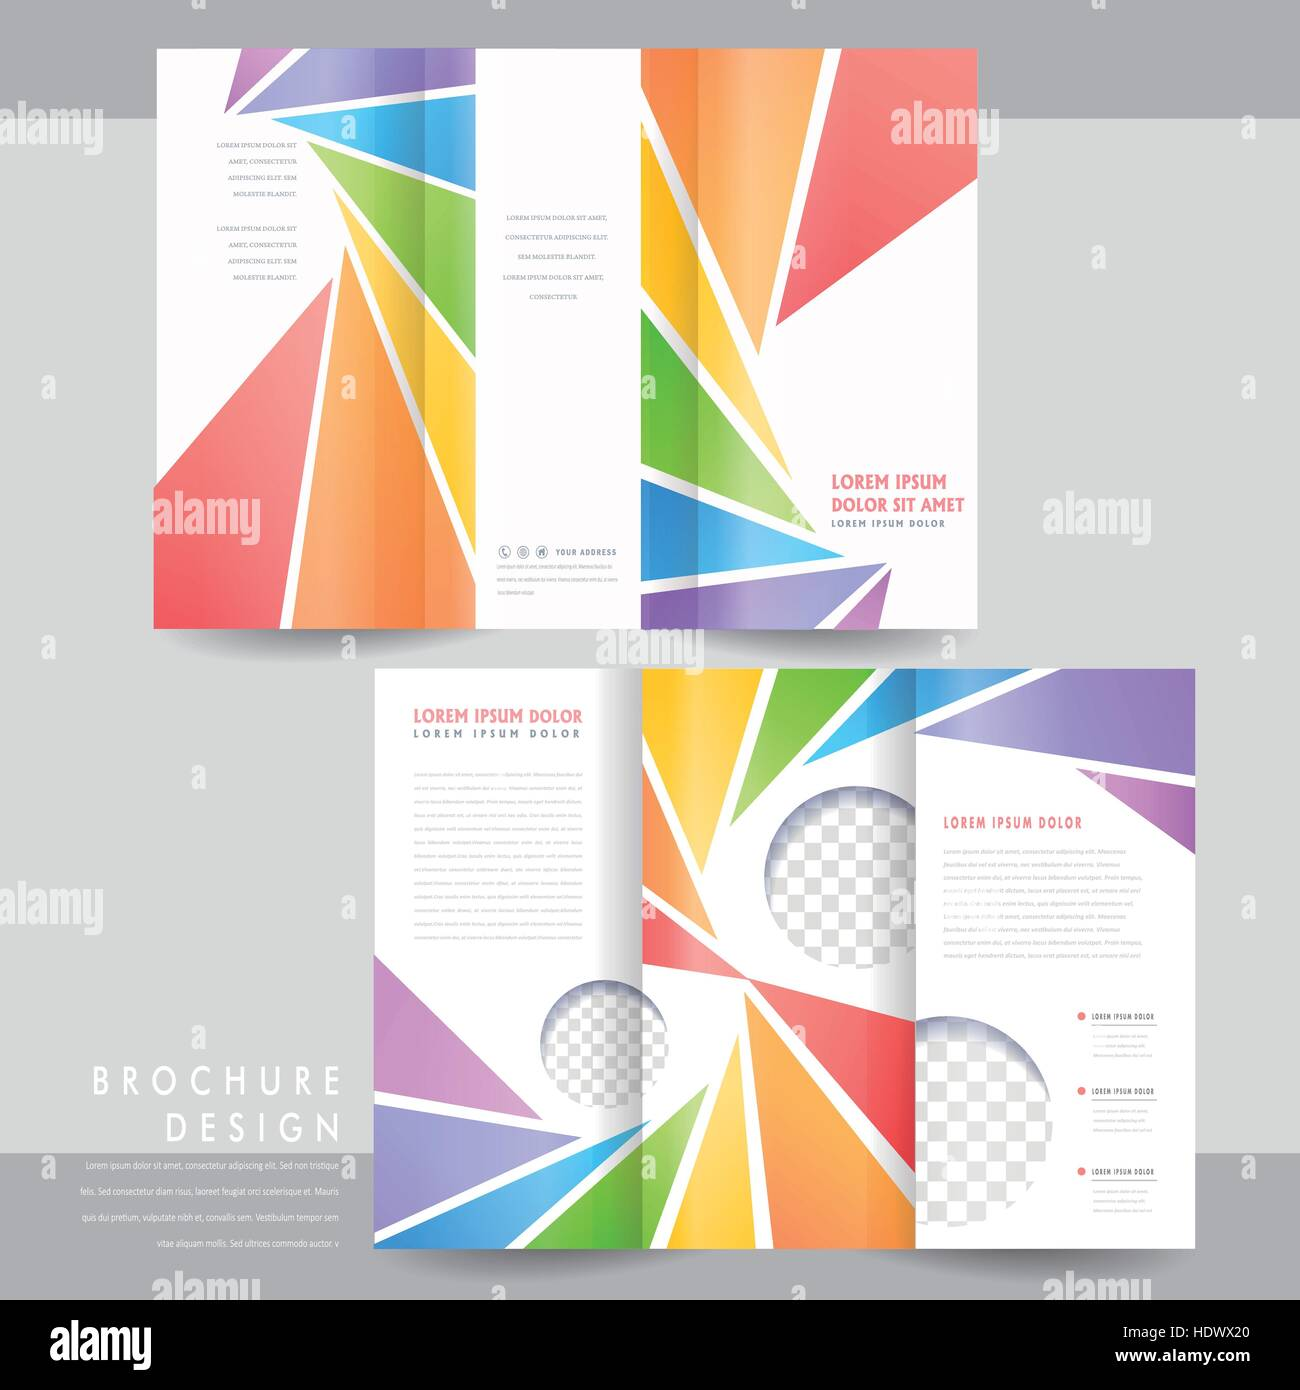 colorful tri fold brochure template design with spiral triangle